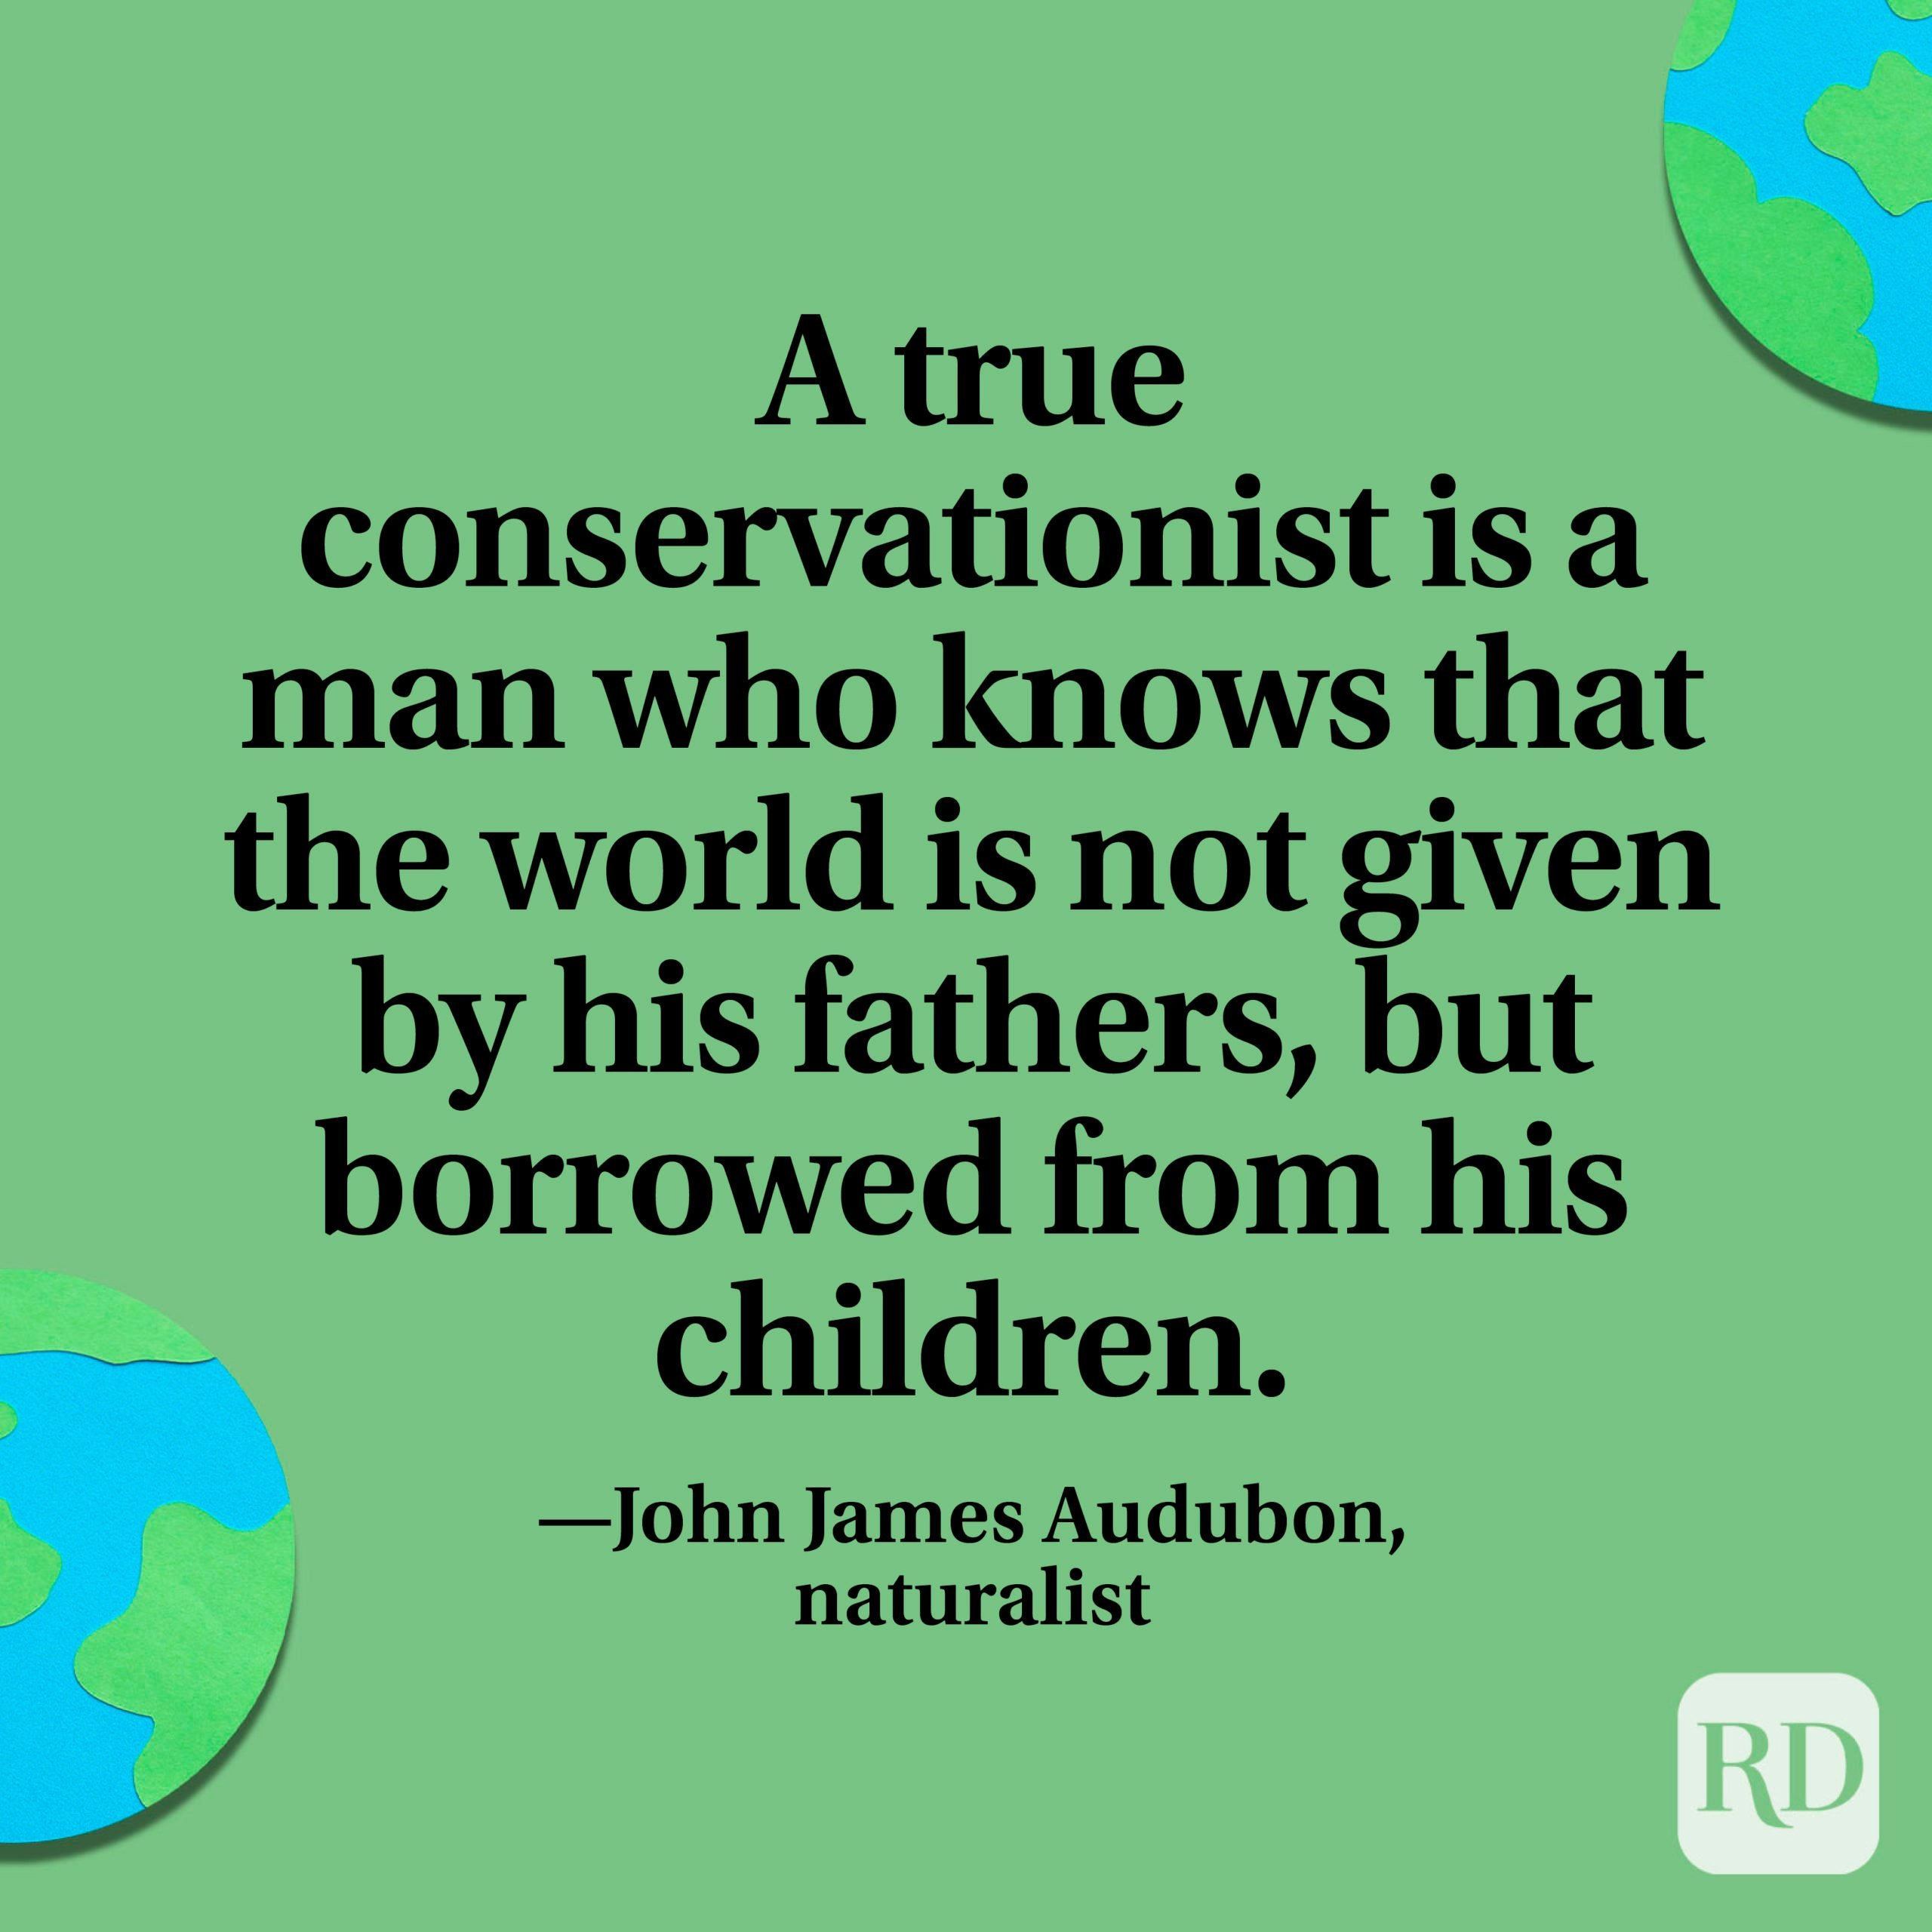 """""""A true conservationist is a man who knows that the world is not given by his fathers, but borrowed from his children."""" —John James Audubon, naturalist."""